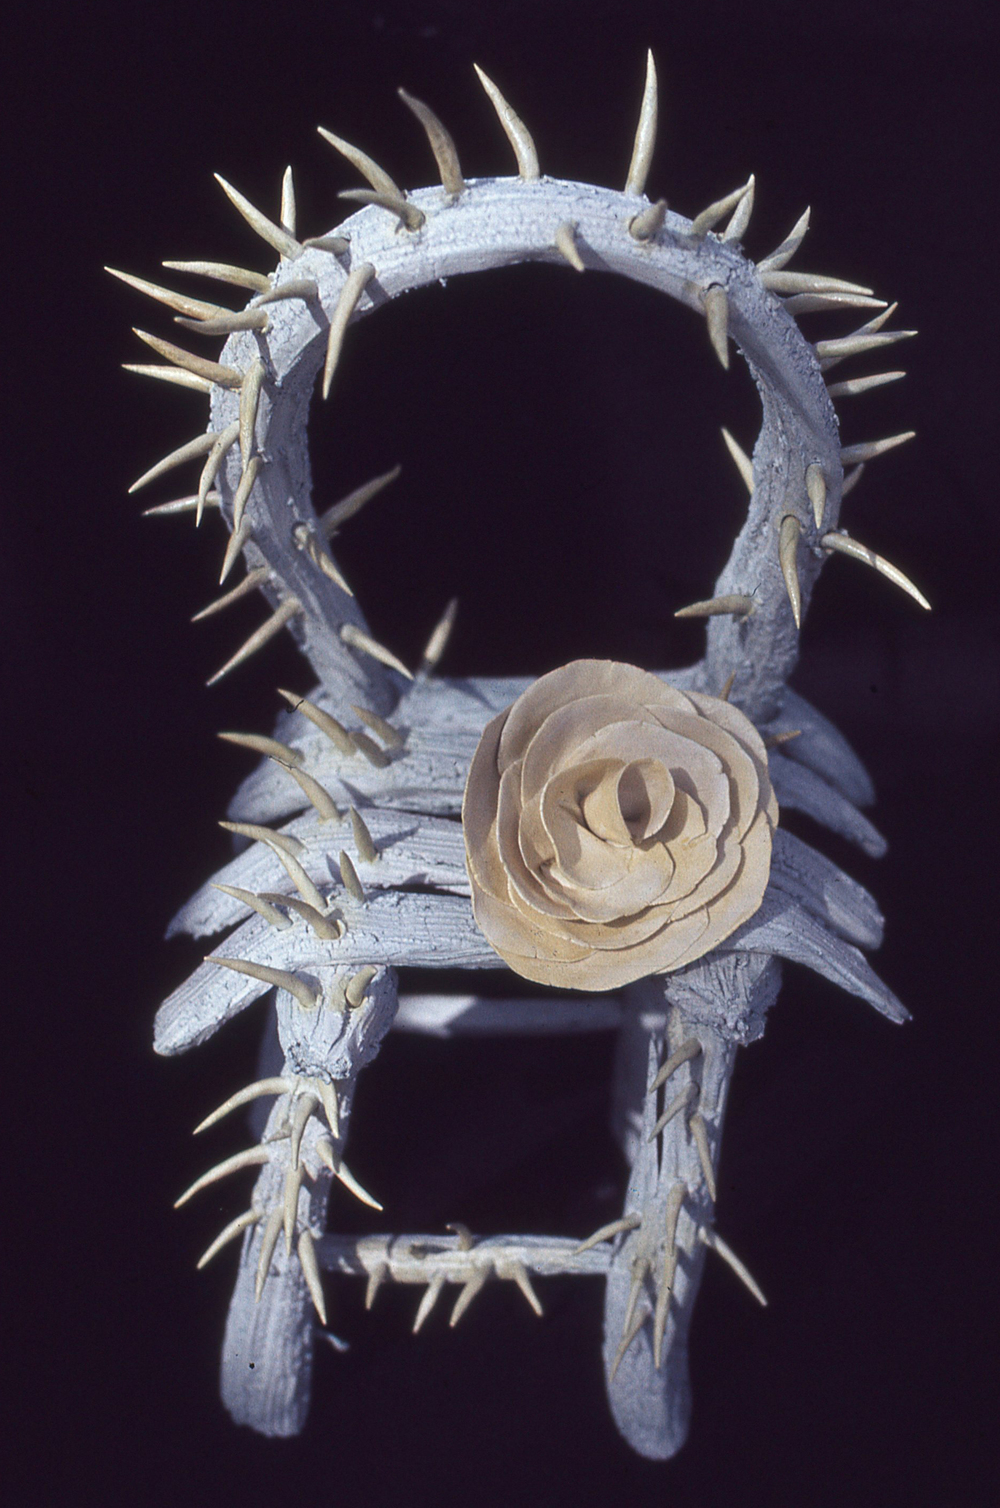 Thorny Chair with Rose 10x6 1978.jpg